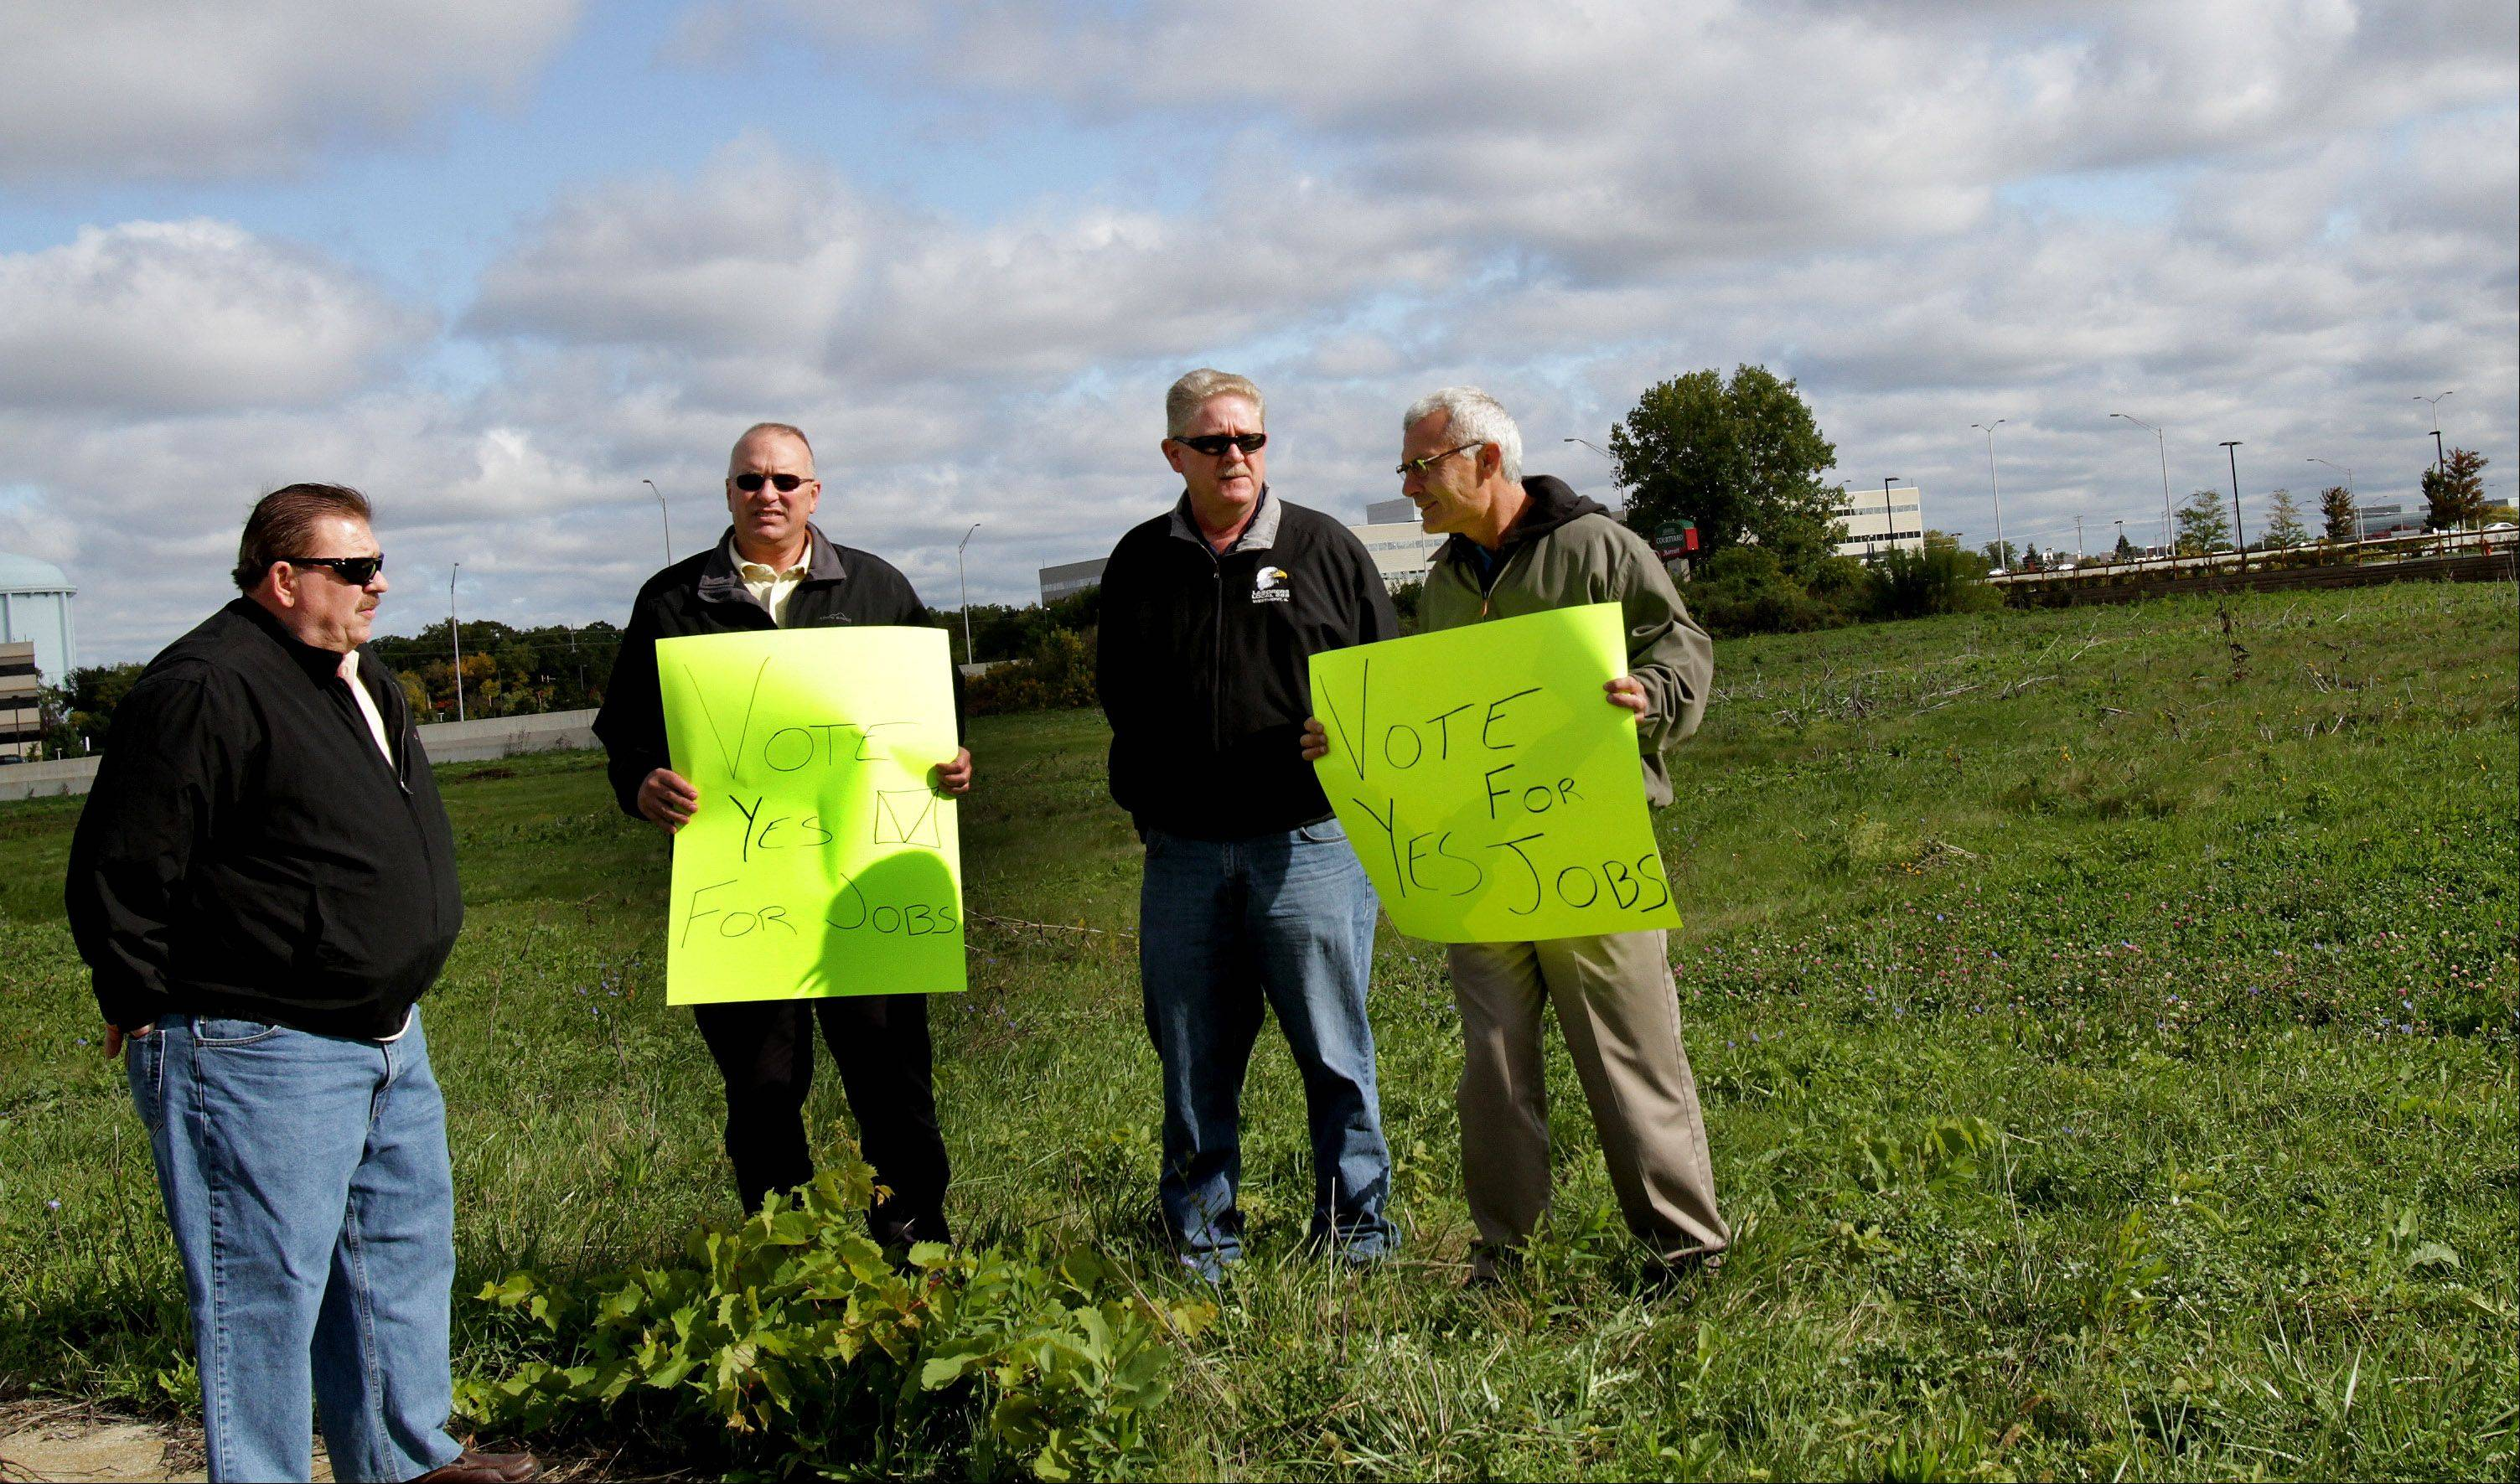 Four union members gathered Friday in Naperville to show support for the proposed Freedom Plaza Development.